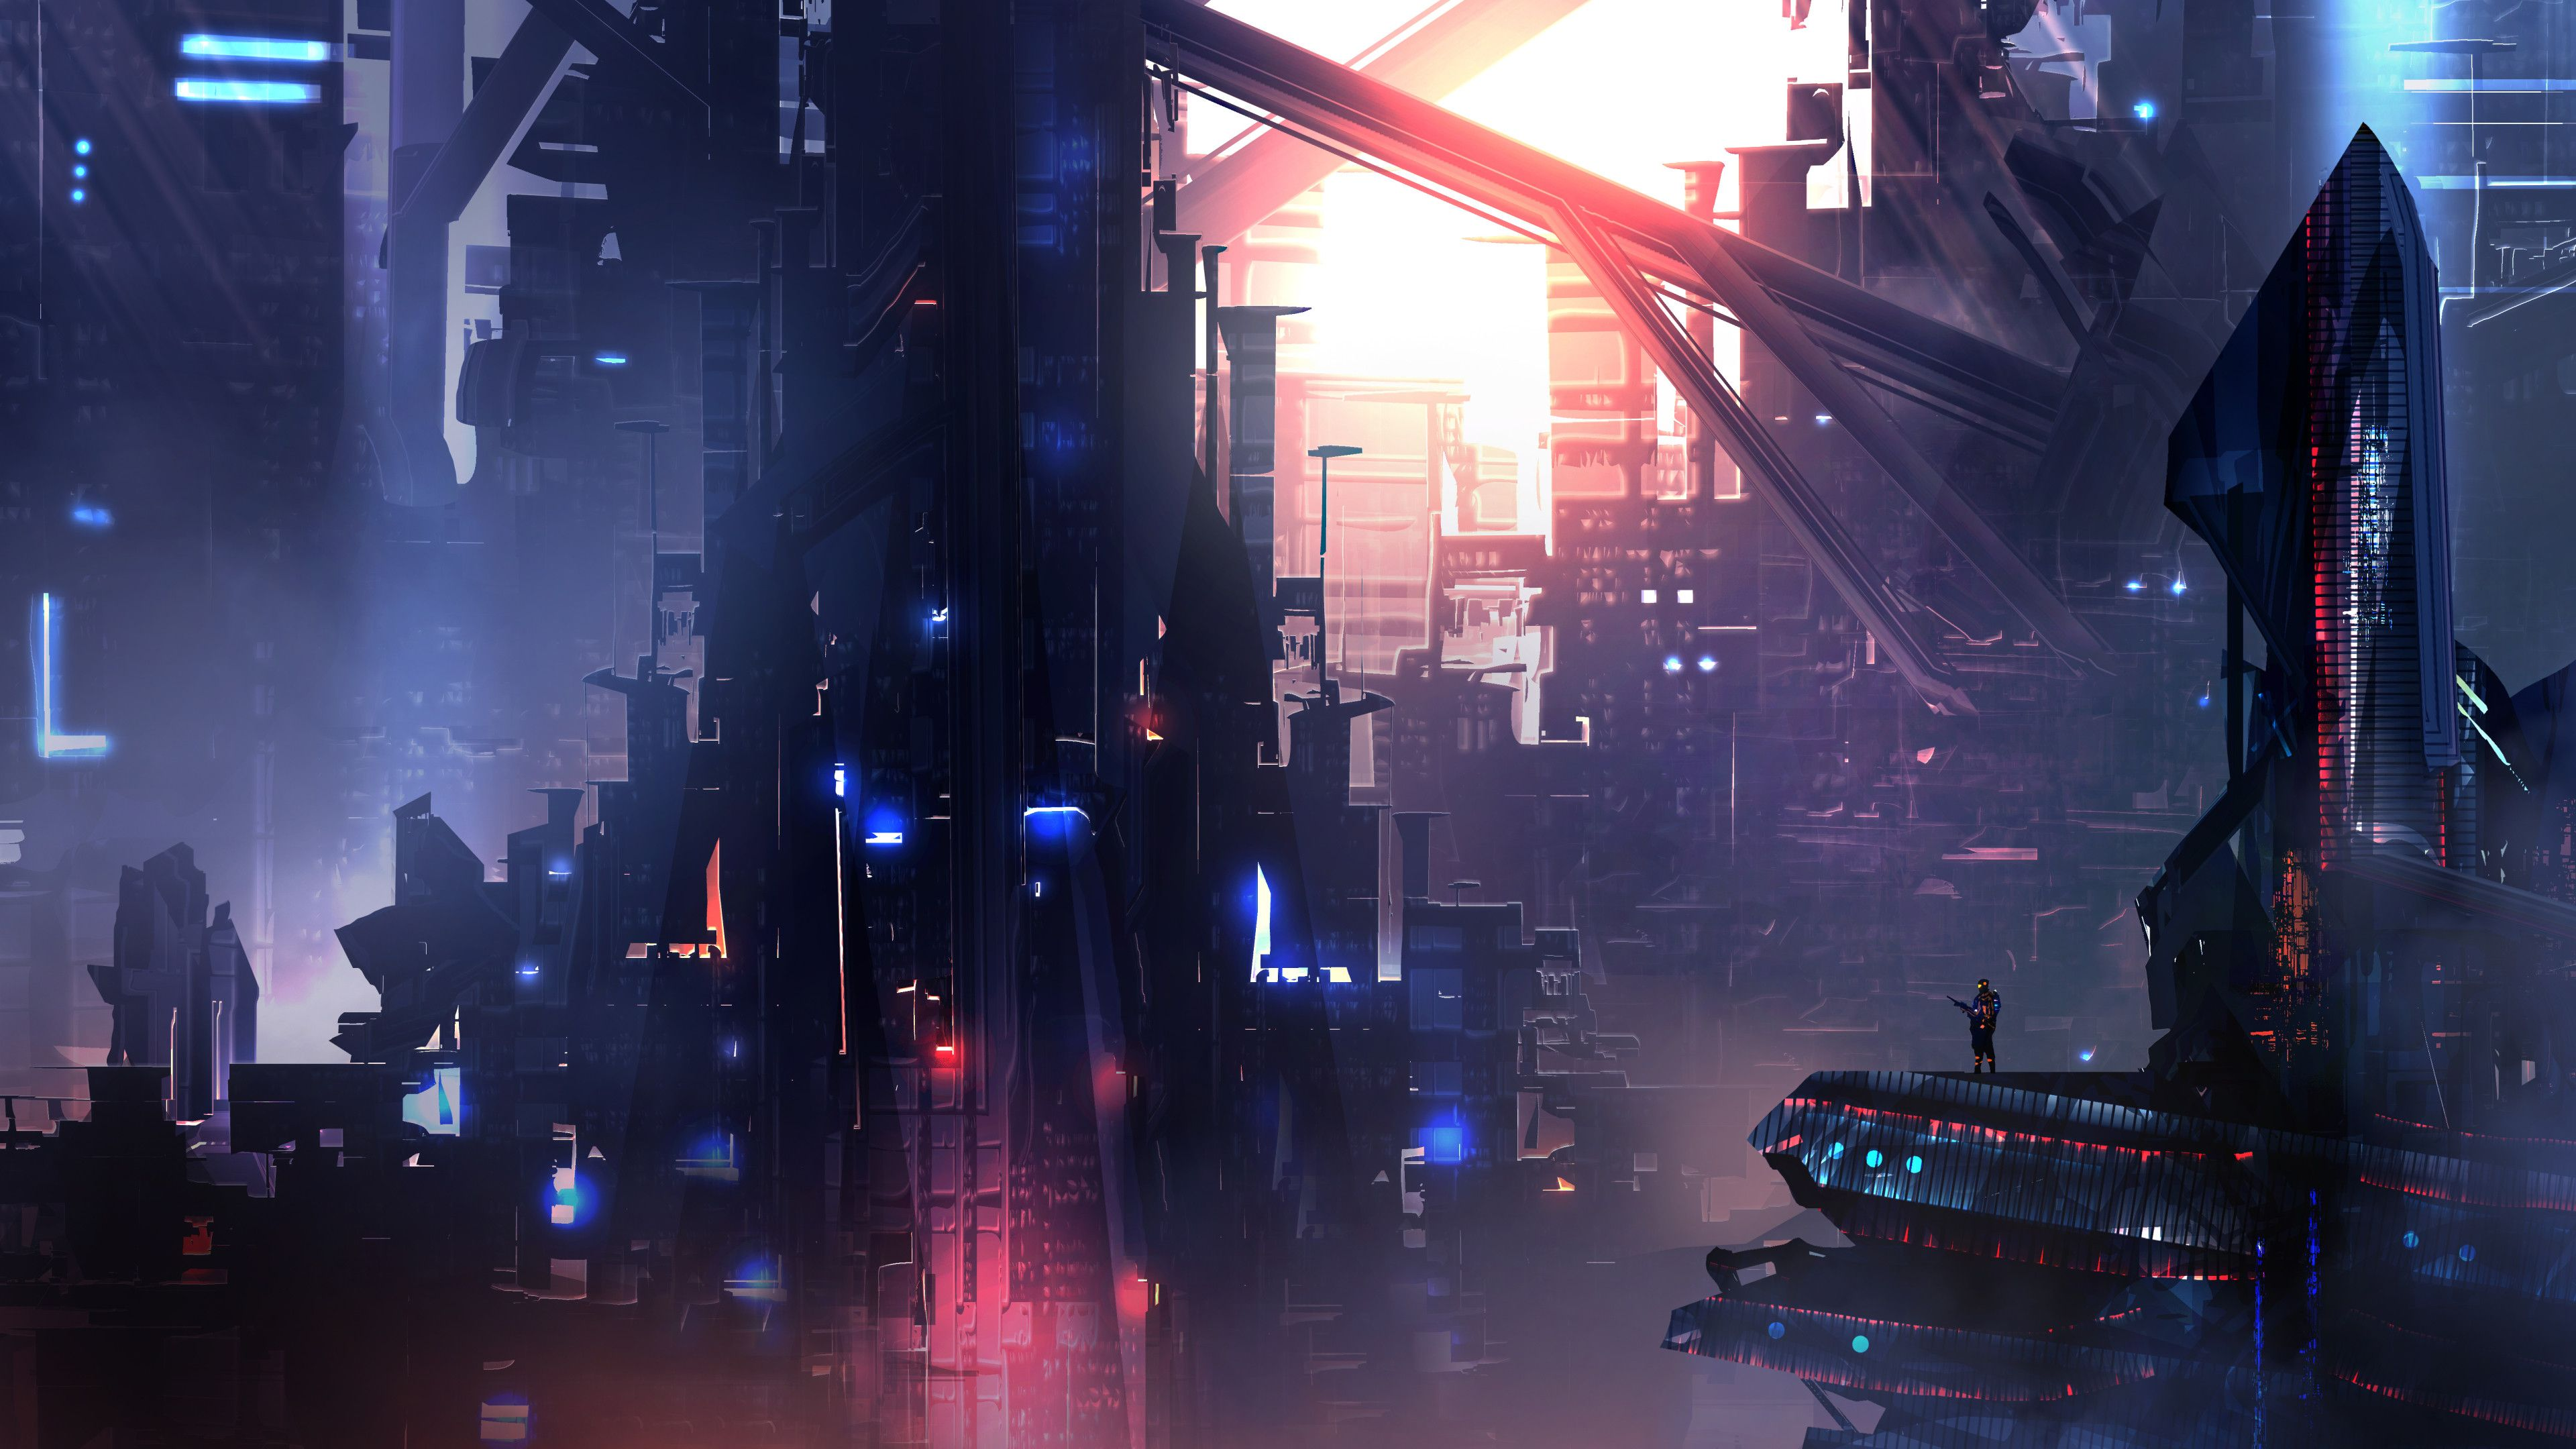 4k Sci Fi Wallpaper Dump Album On Imgur Sci Fi Wallpaper Cyberpunk Art City Wallpaper